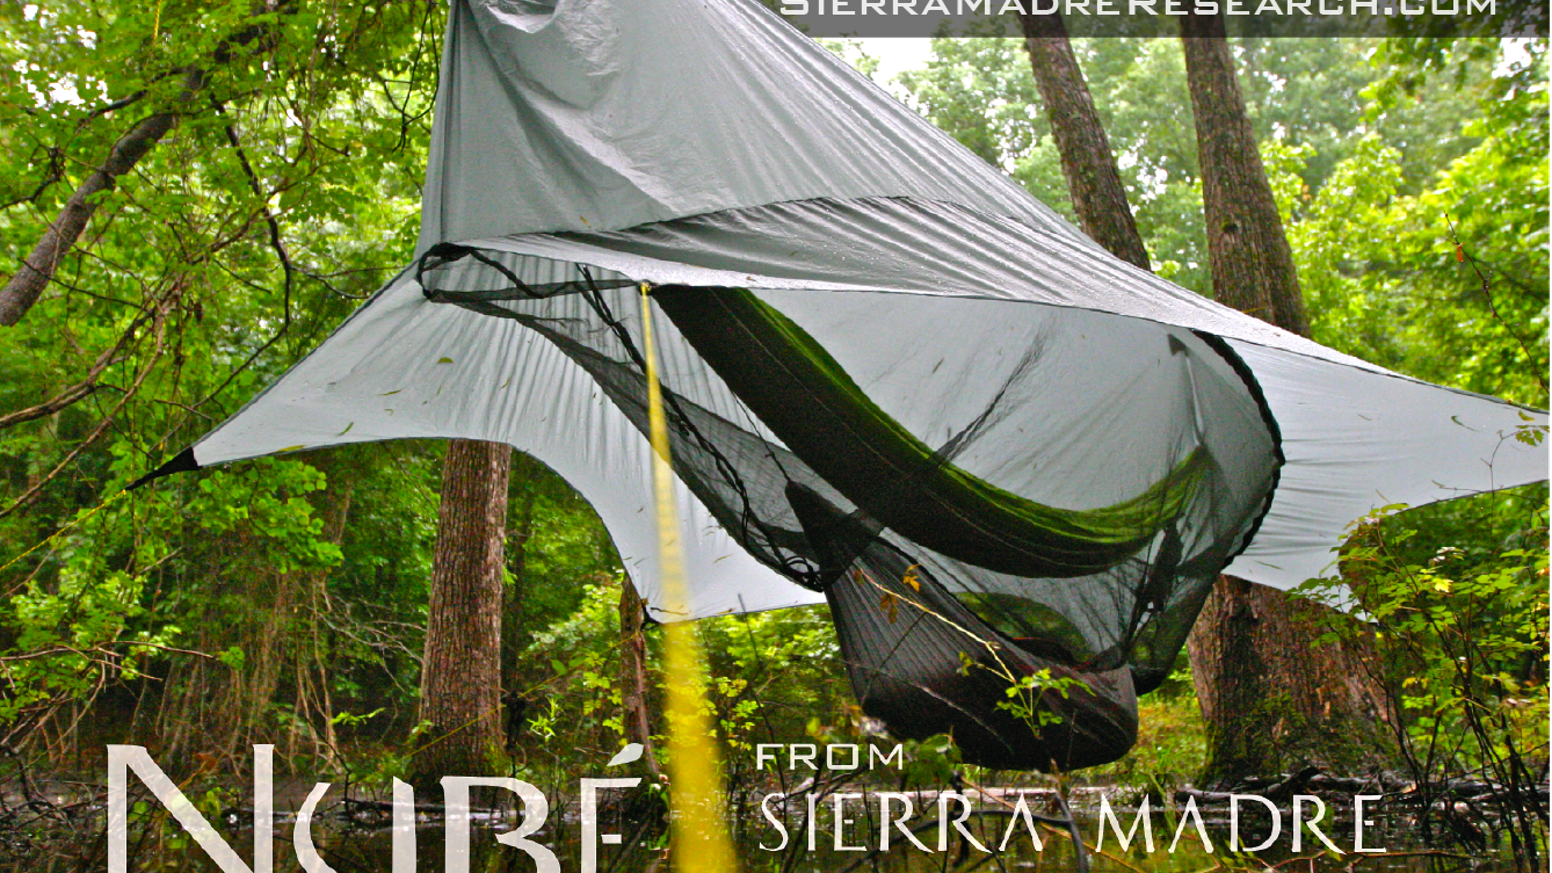 The most complete hammock shelter ever imagined, its elevated patented design is engineered to protect you AND your gear!